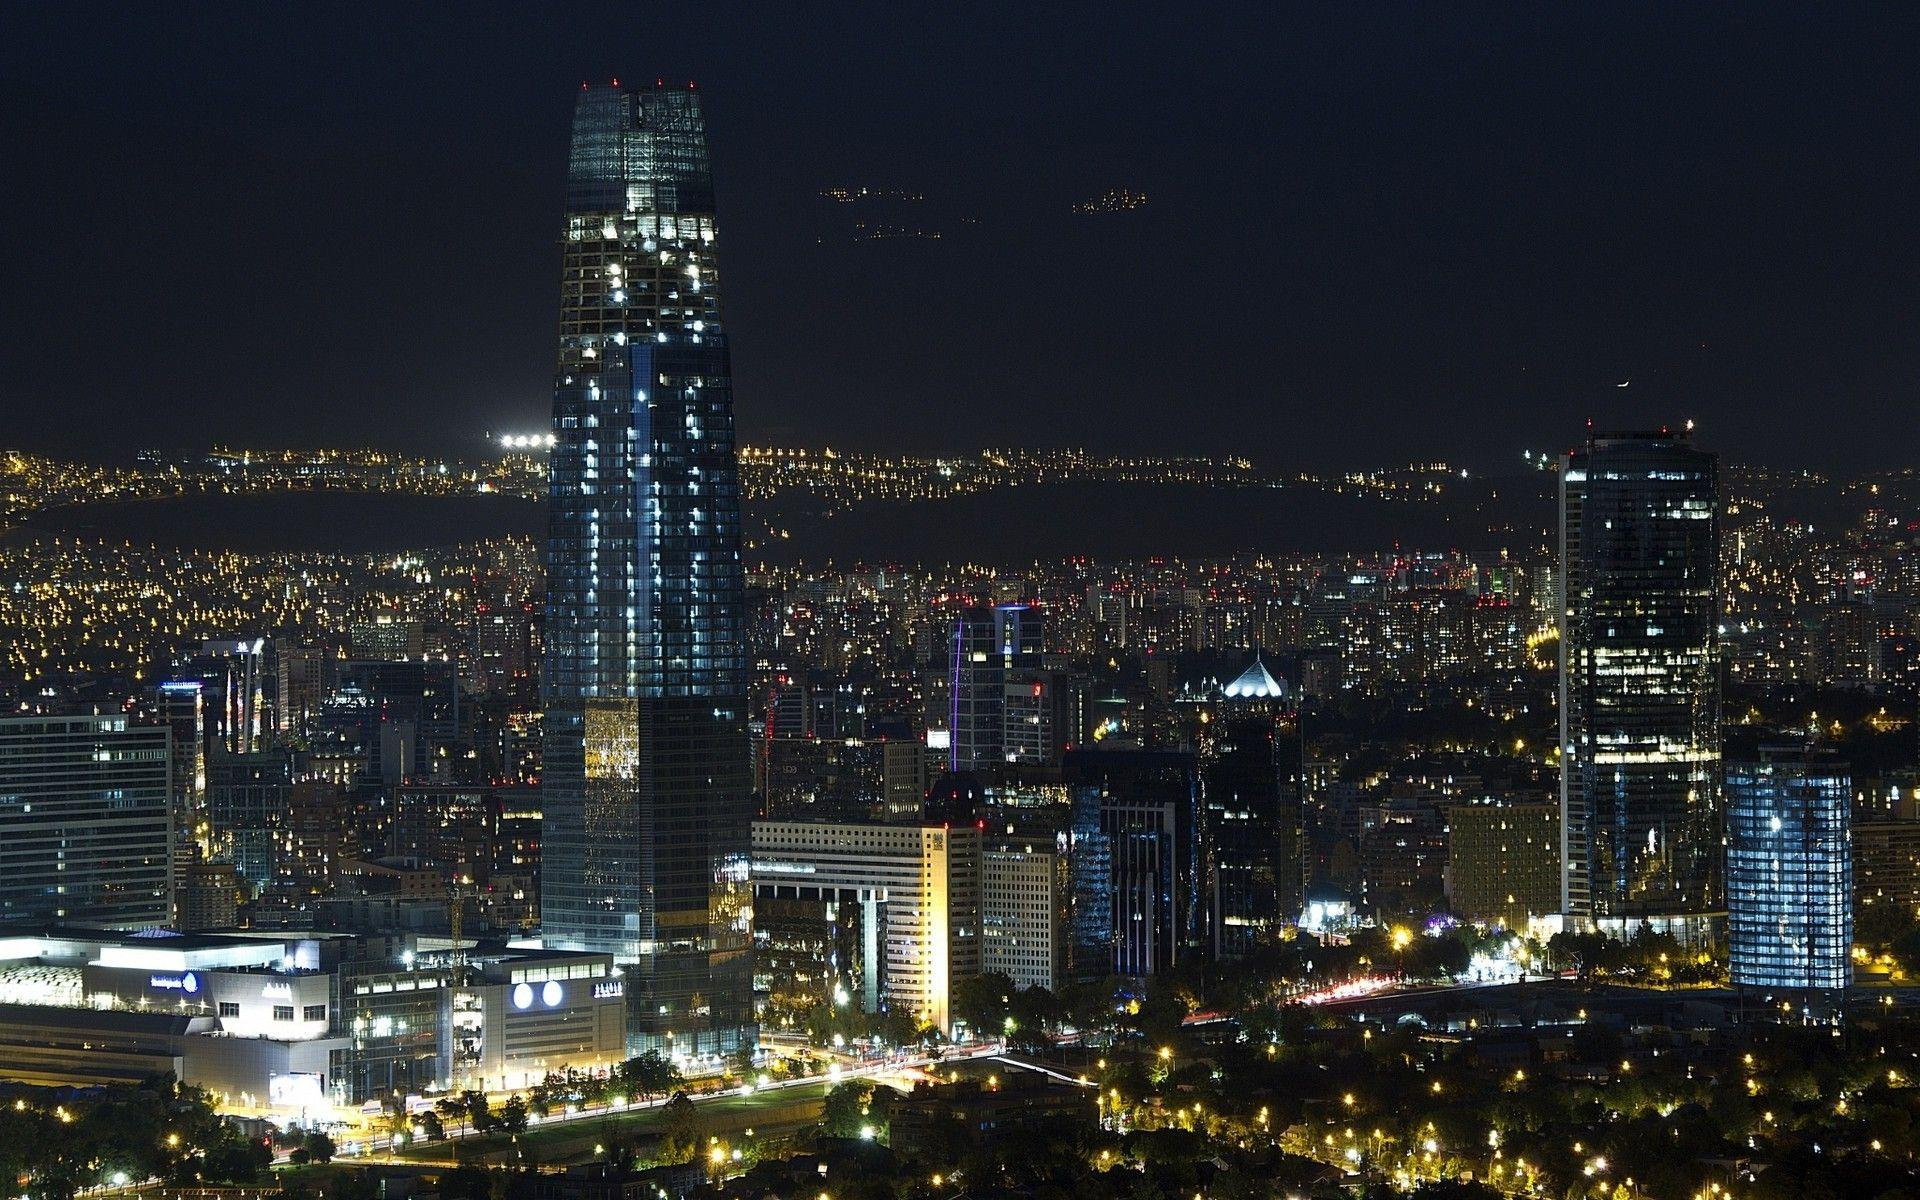 landscape, Lights, Santiago De Chile, Cityscape, Night, Skyscraper ...